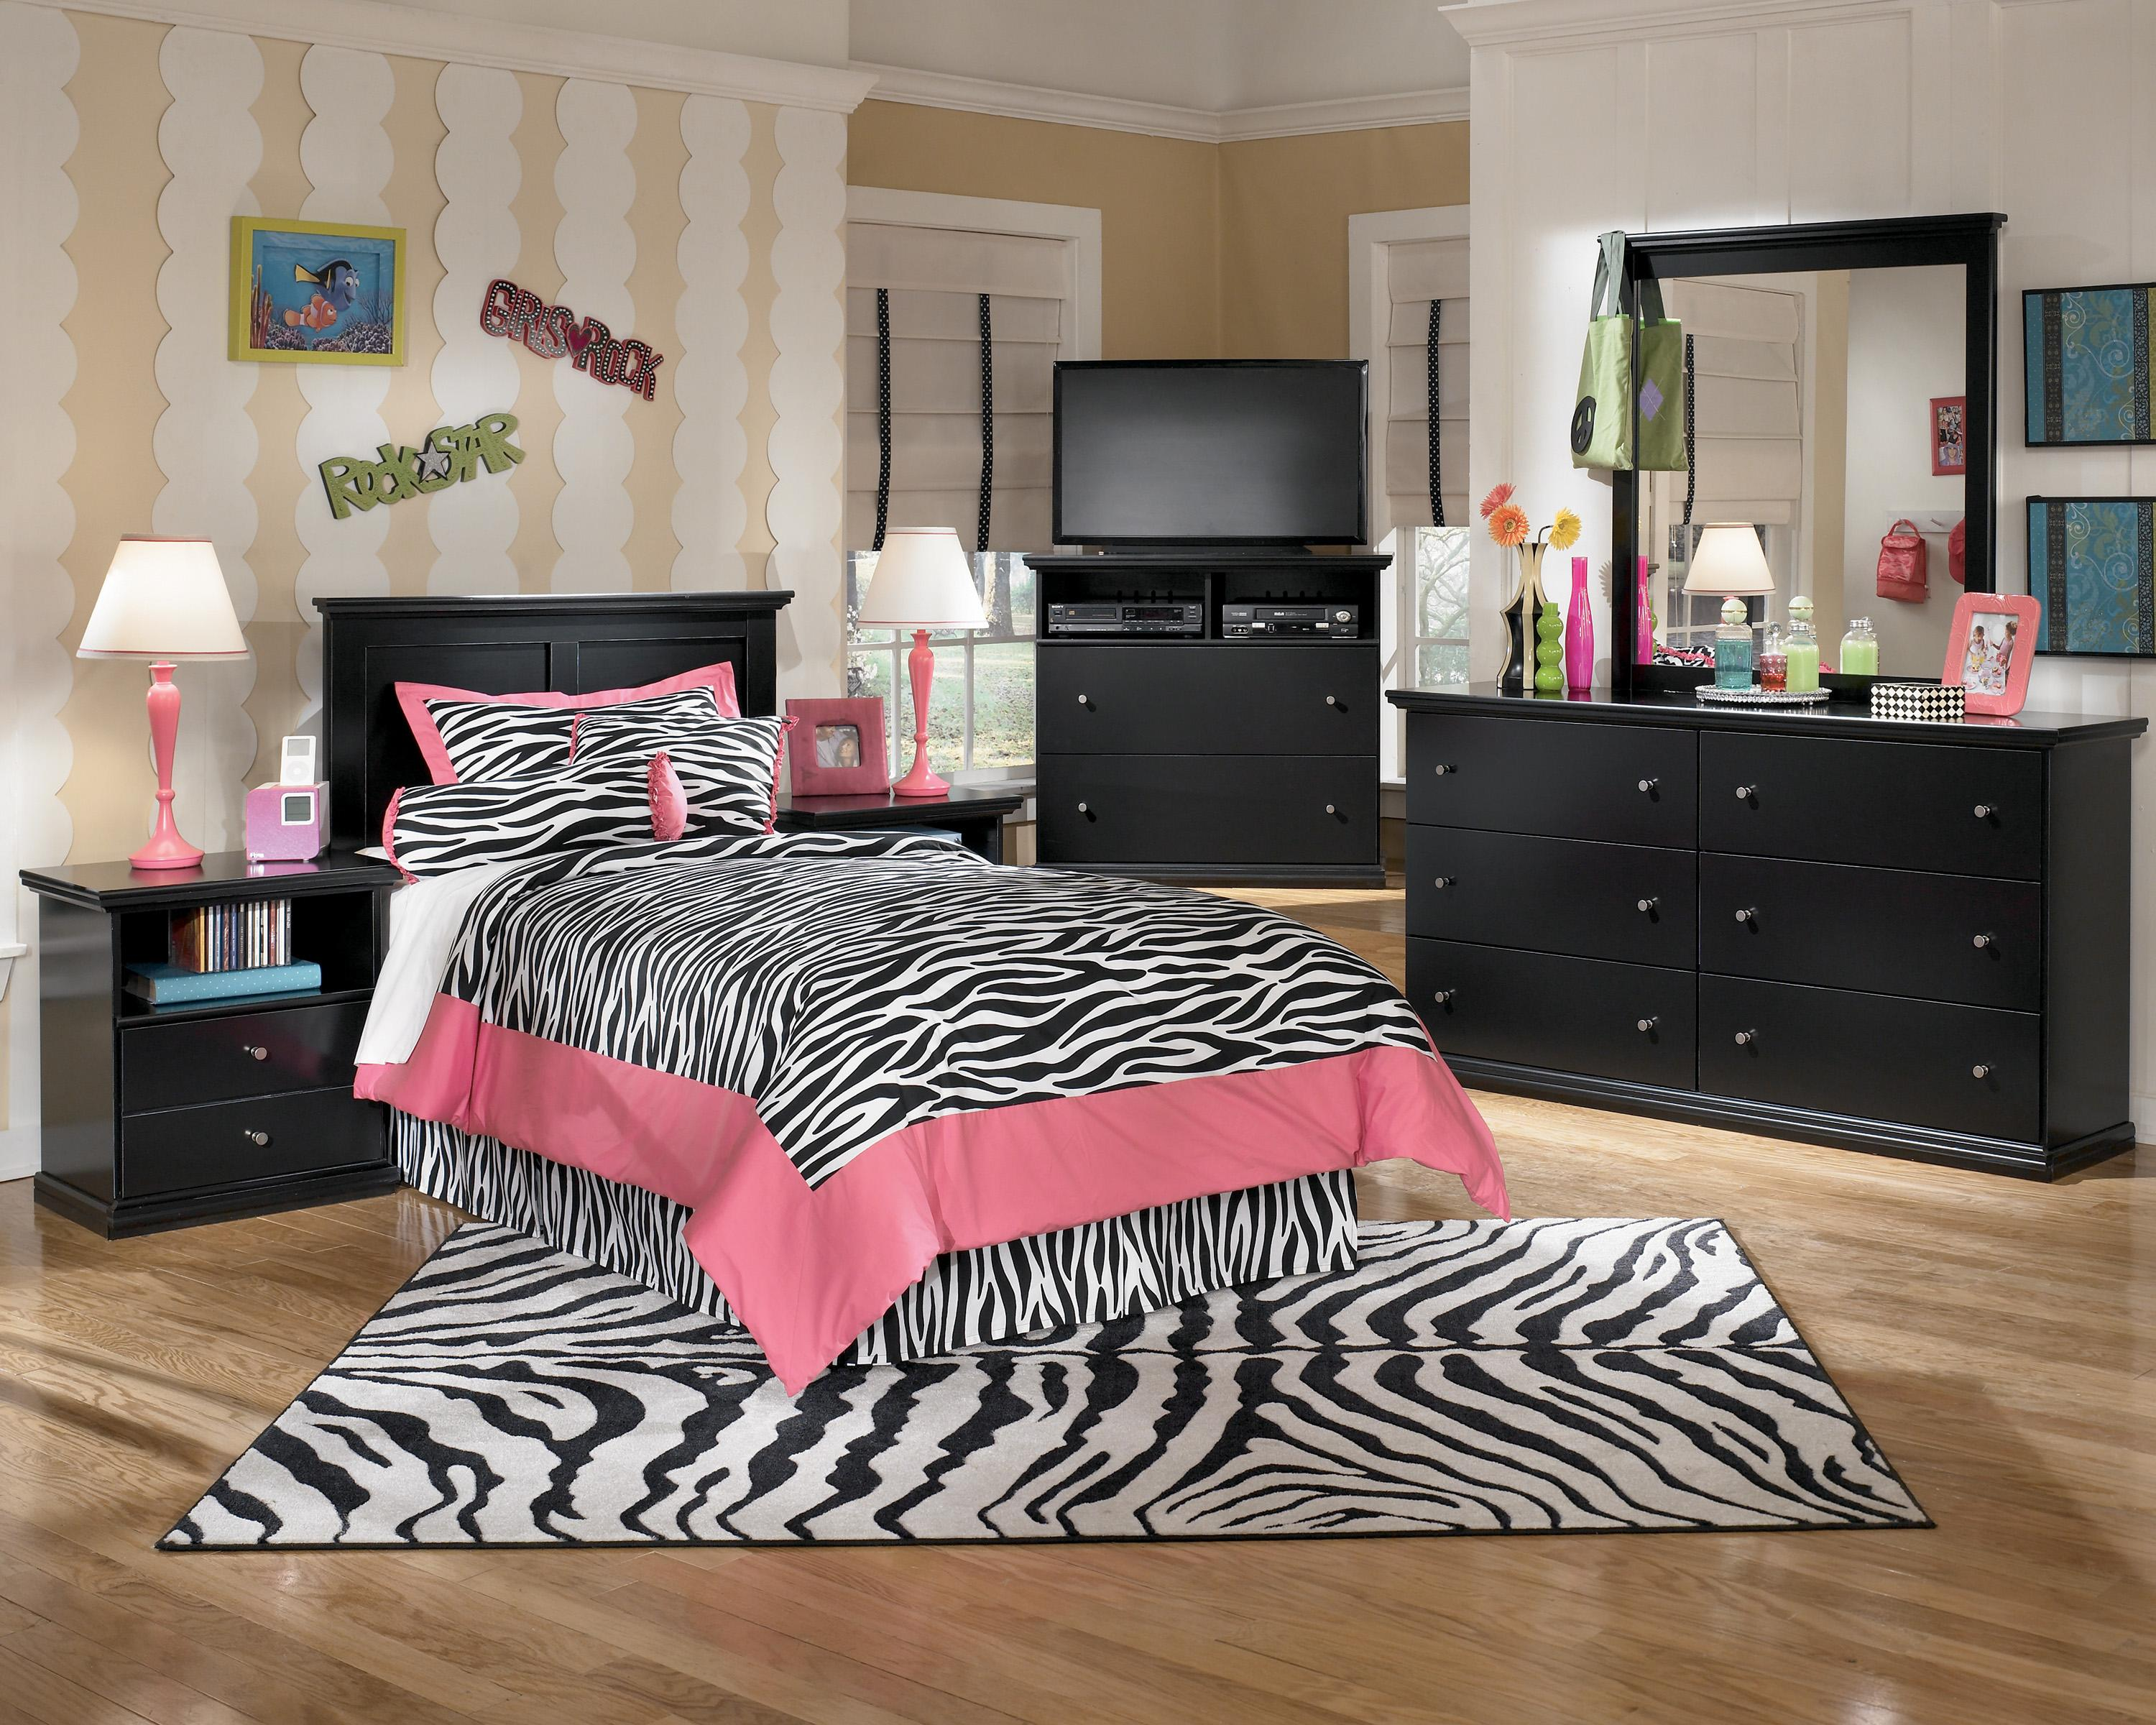 Signature Design by Ashley Maribel Twin Bedroom Group - Item Number: B138 T Bedroom Group 3